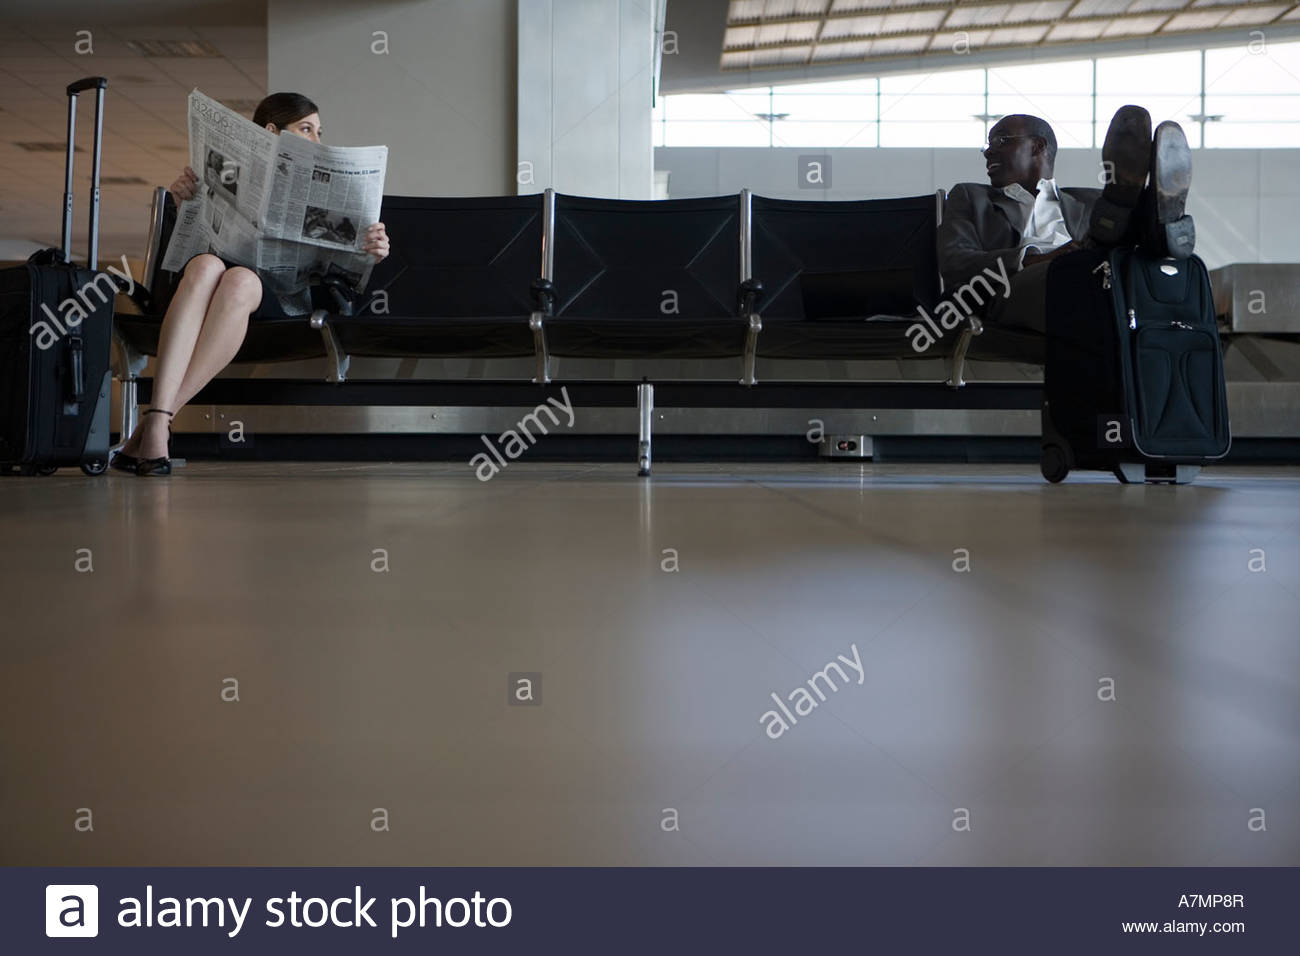 Businesswoman and businessman waiting in airport departure lounge woman reading newspaper - Stock Image